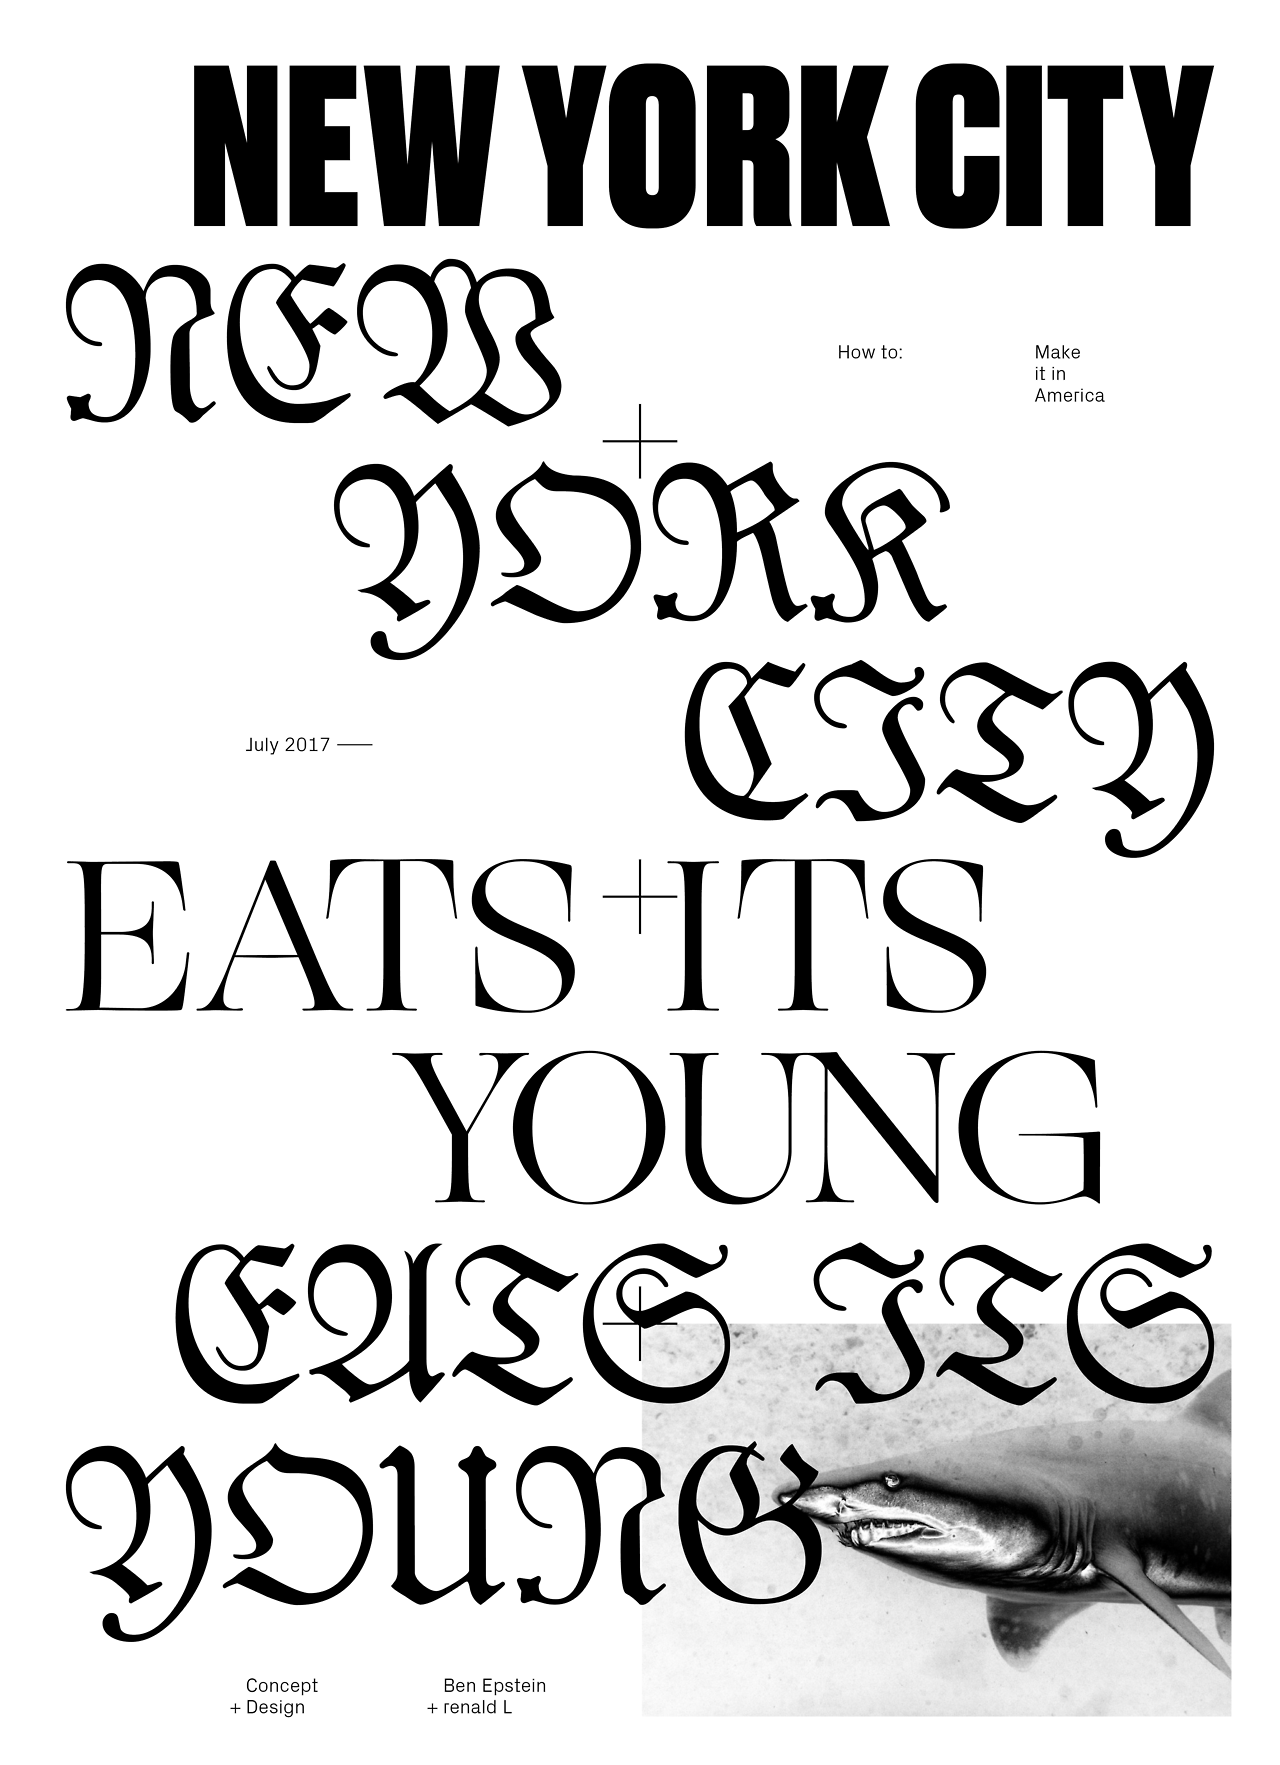 Renaldl Ogg Used In A Poster Combined With Blackletter Typeface Designed